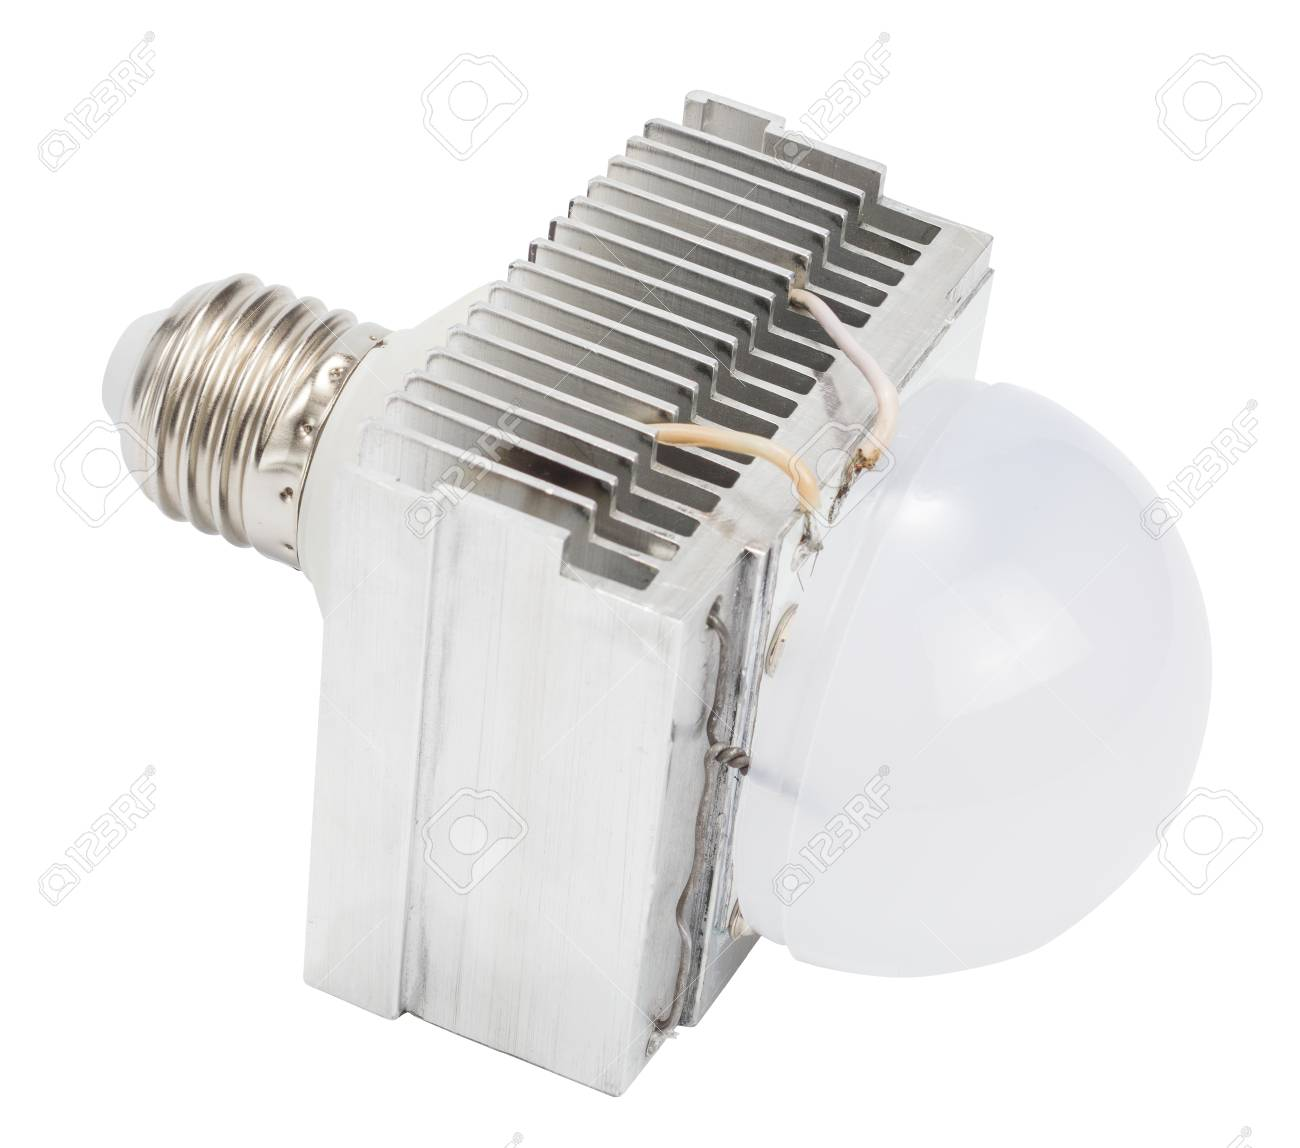 Diy led lamp with huge heatsink on it  Ugly and messy fast handmade